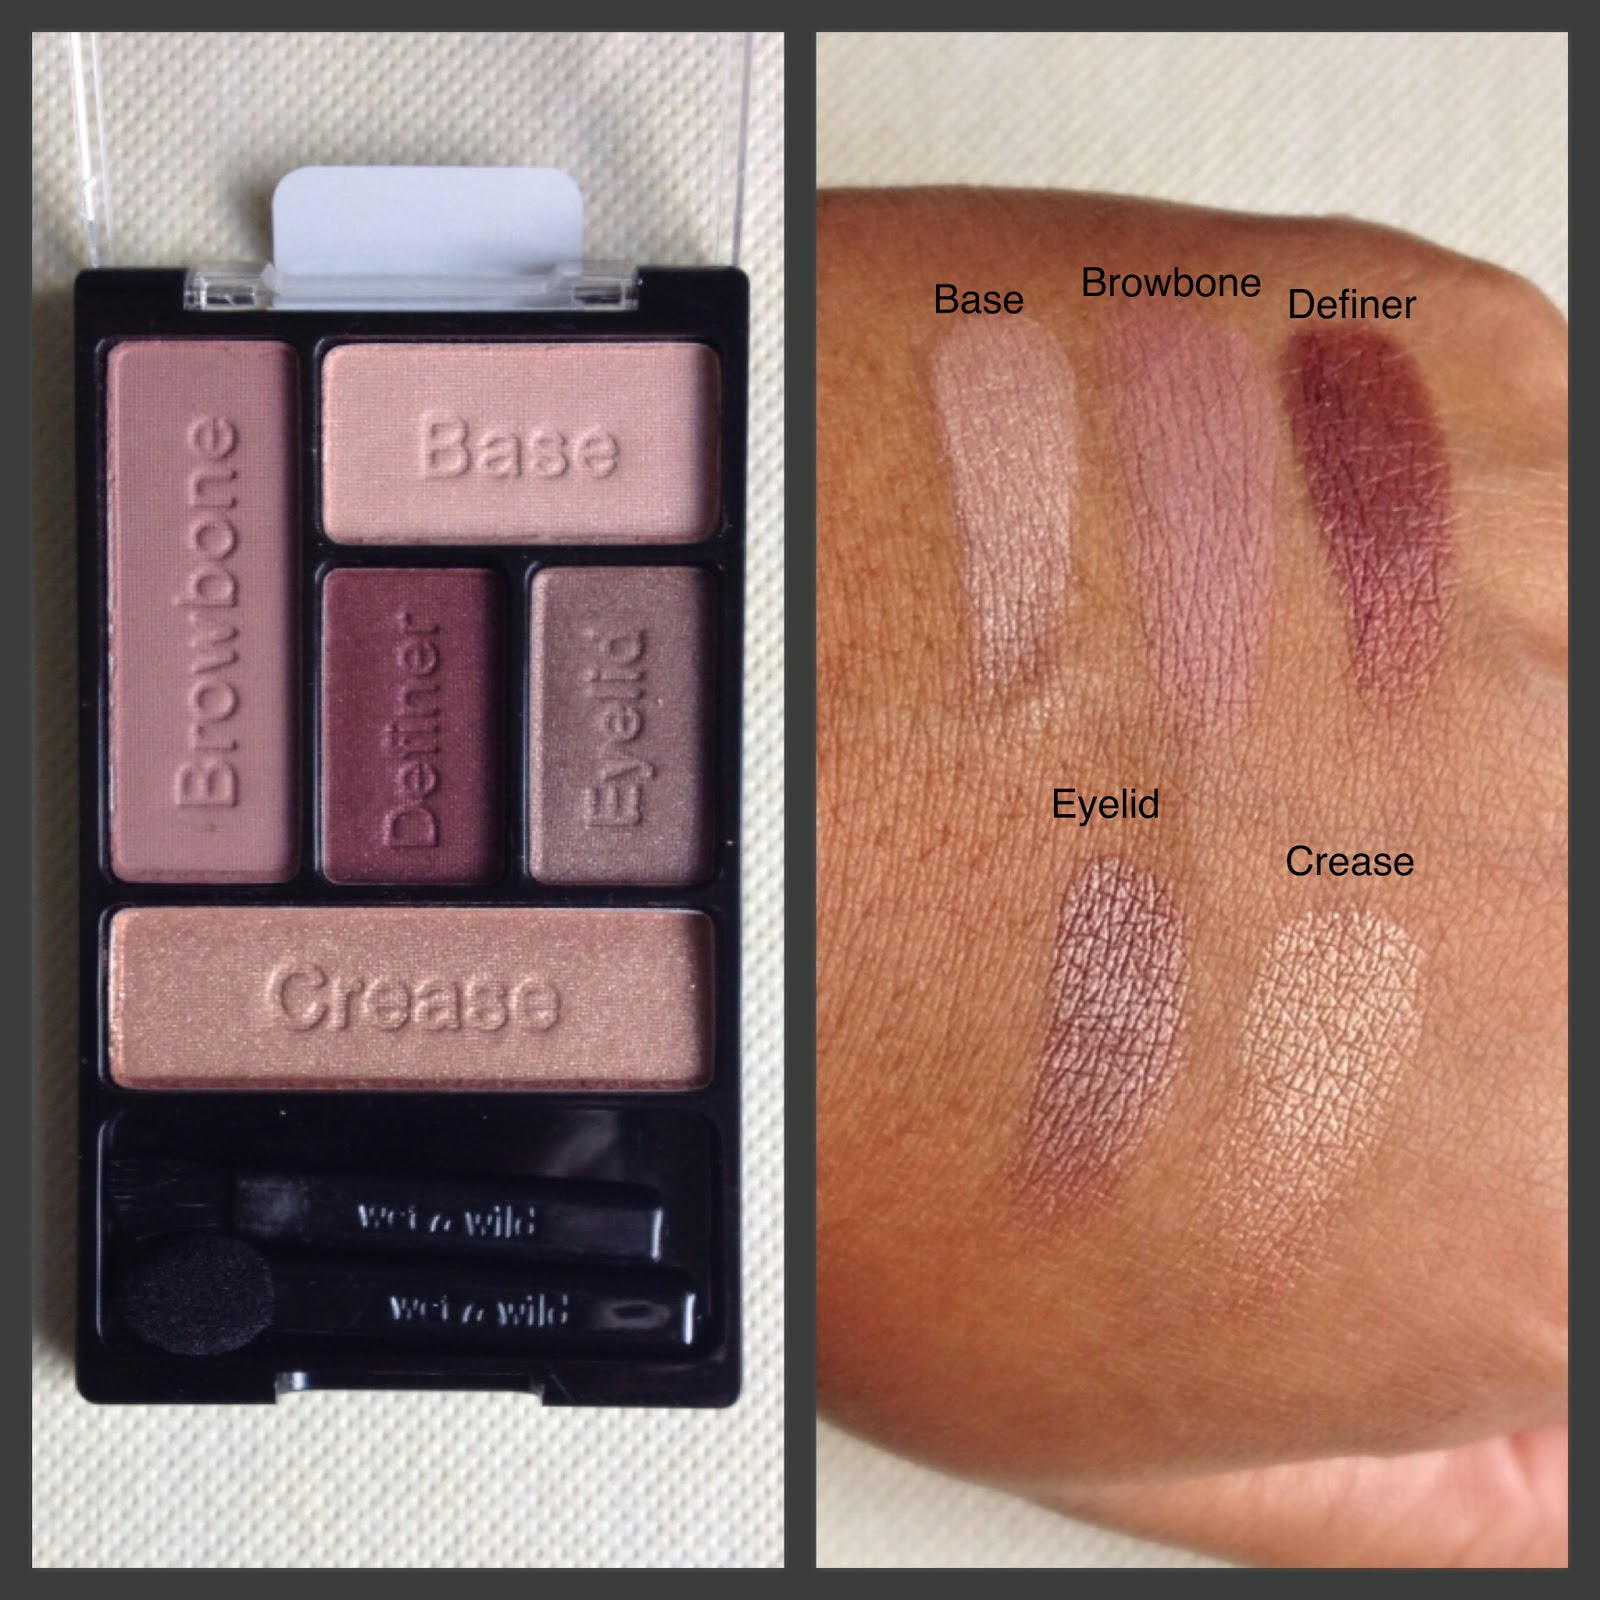 Wet n wild smoke and melrose limited edition palette swatches on dark skin